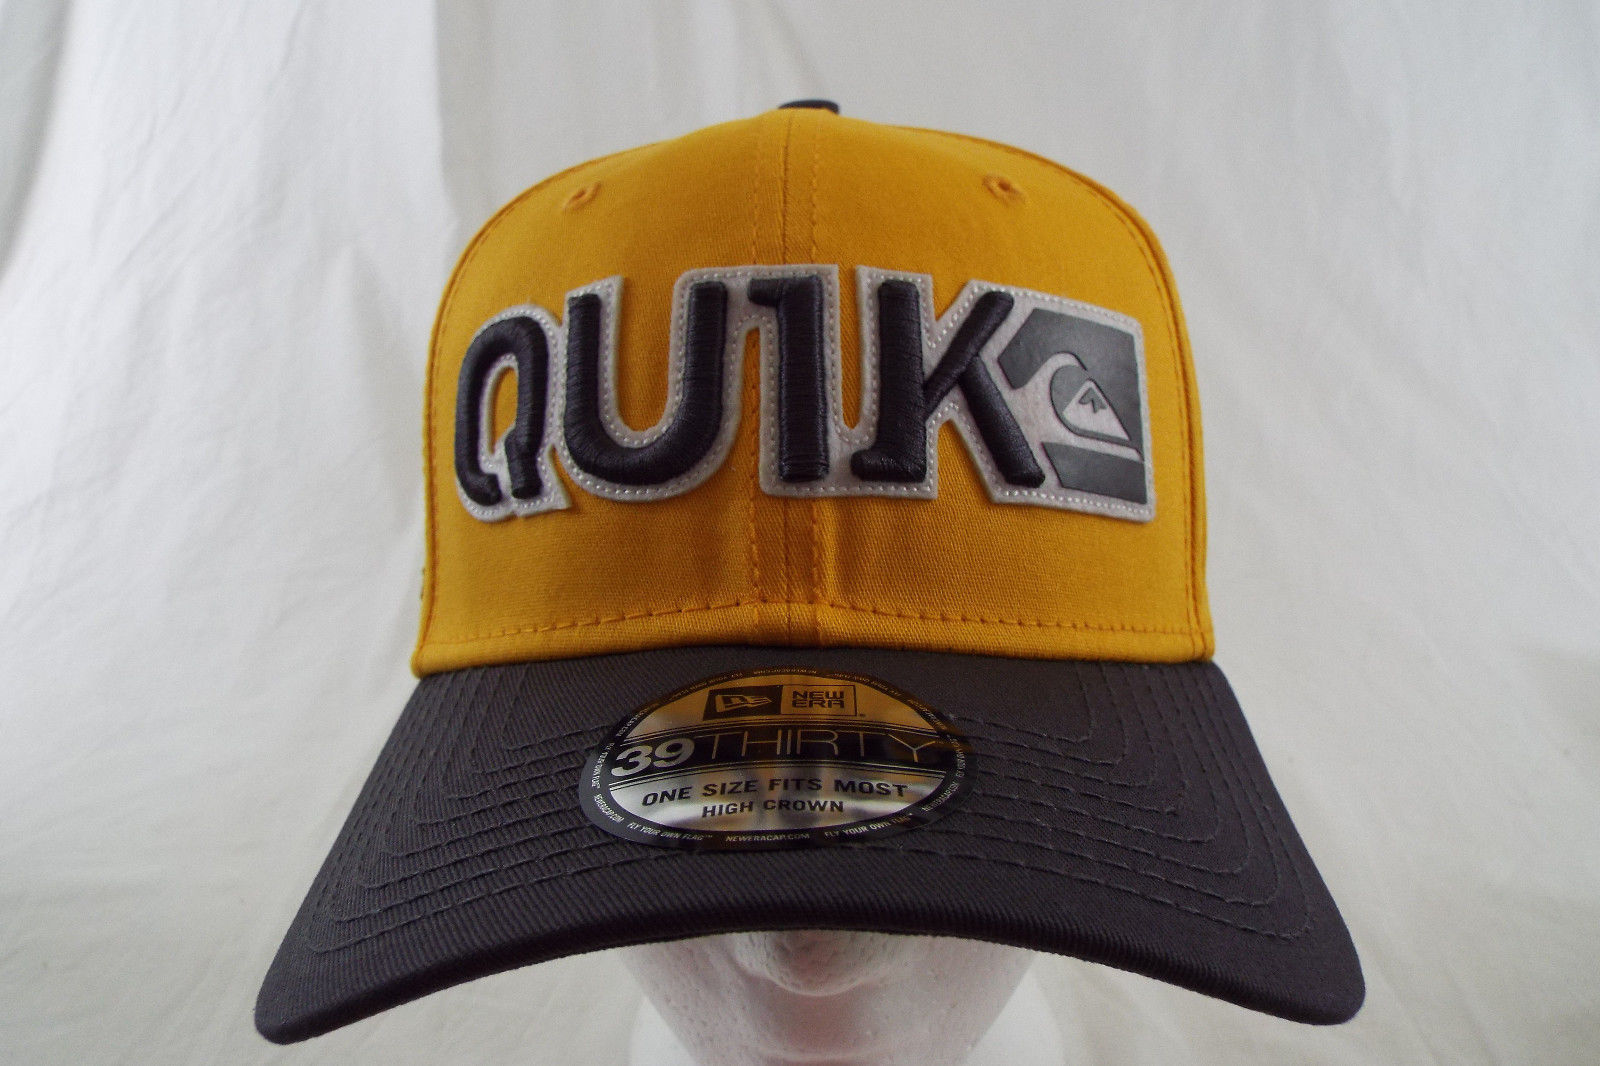 Quiksilver 39THIRTY New Era Hat High Crown Yellow Grey NWT One Size